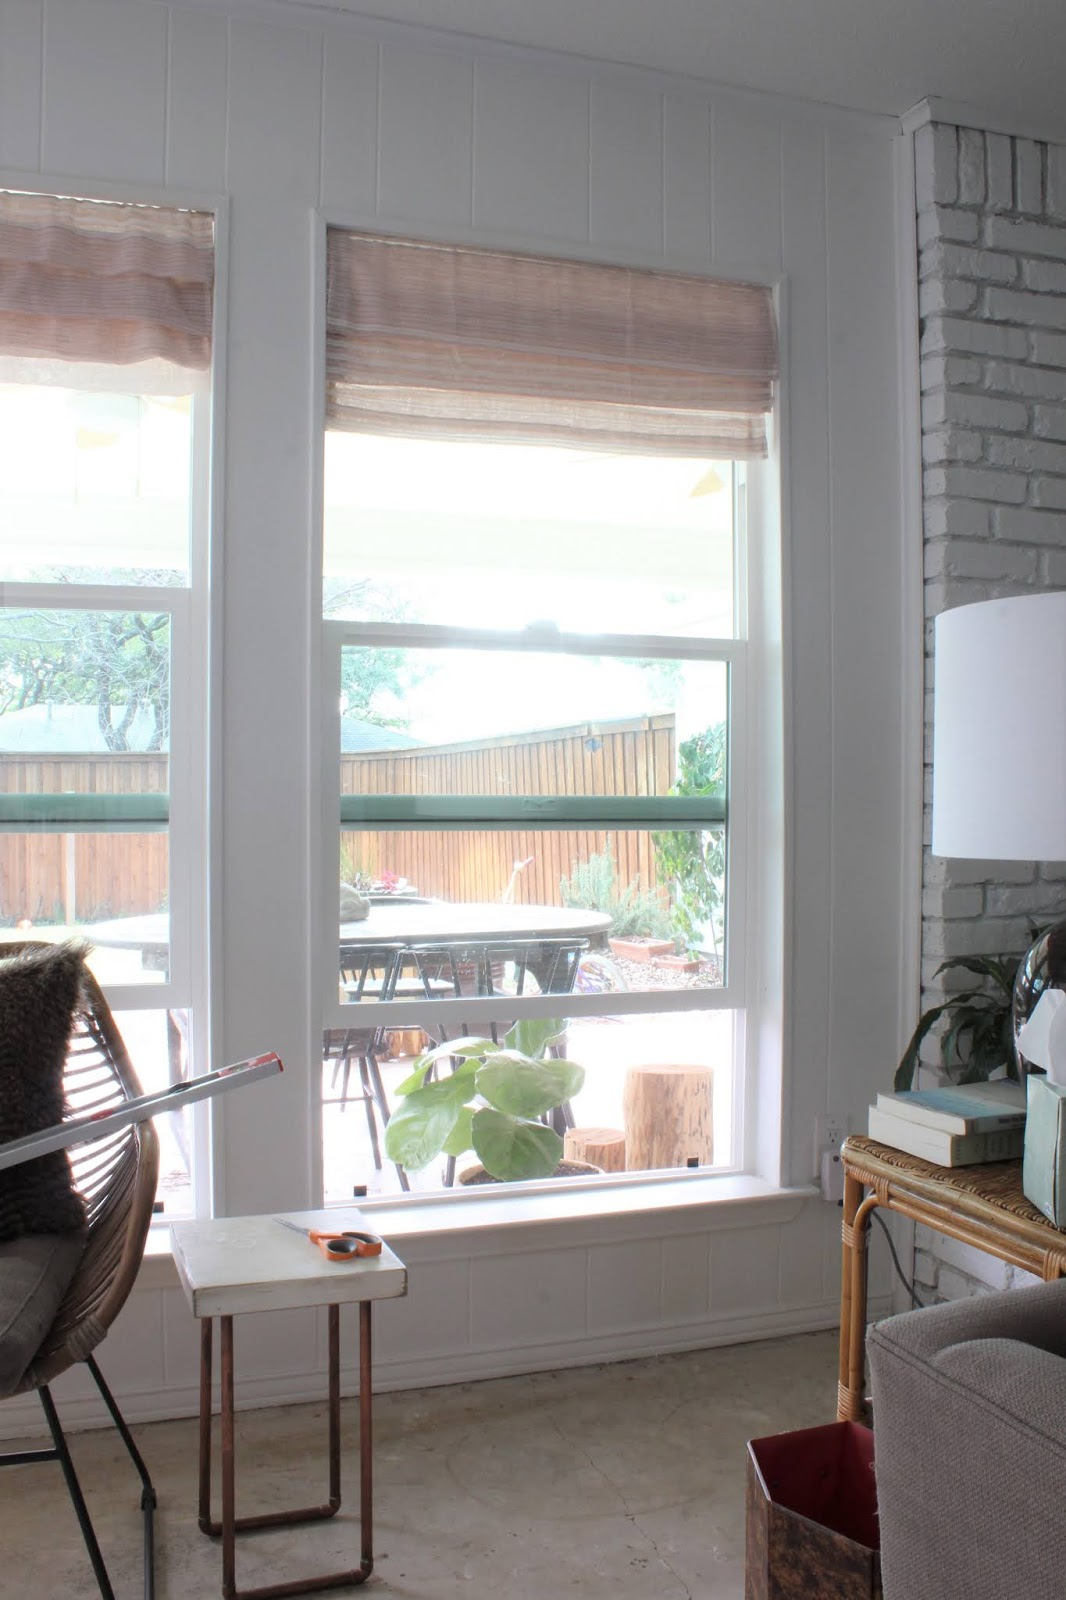 We needed a little color and texture on the windows in our living room. We didn't need the privacy so I didn't want to pay for actual shades. Instead I made two faux roman shades for under $40 and I love them! | House Homemade